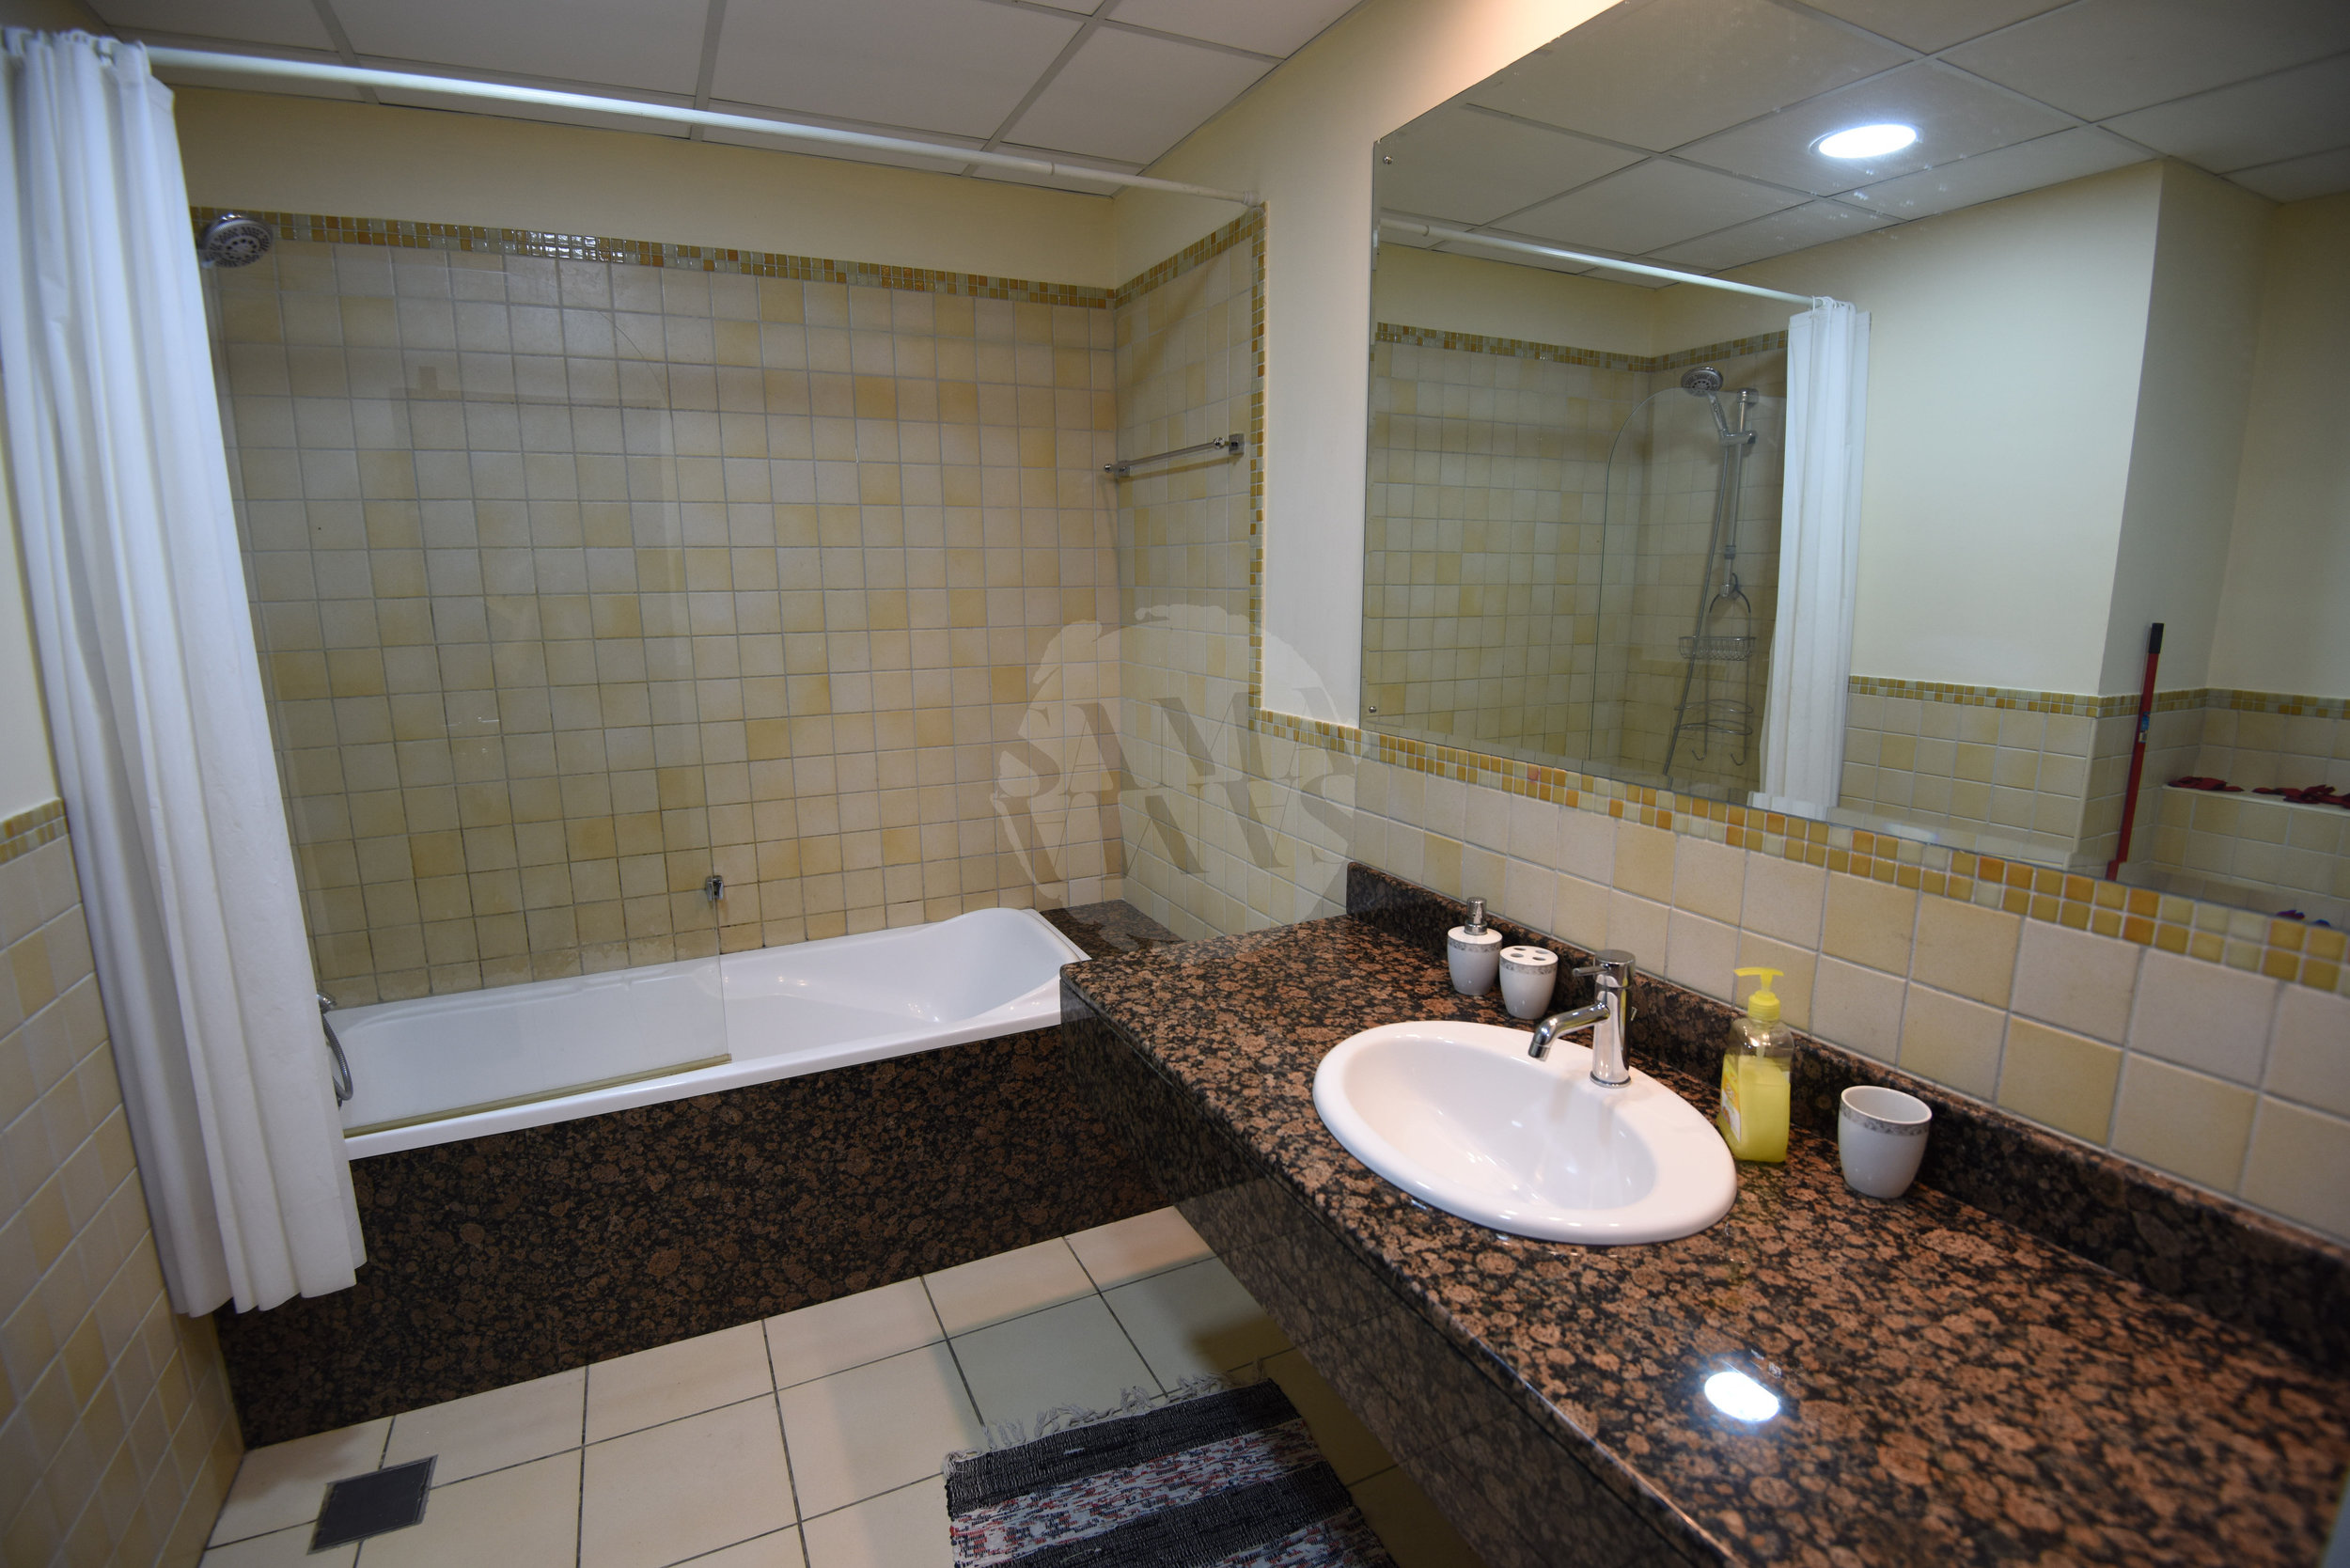 There are two large bathrooms with baths and showers, and a guest WC